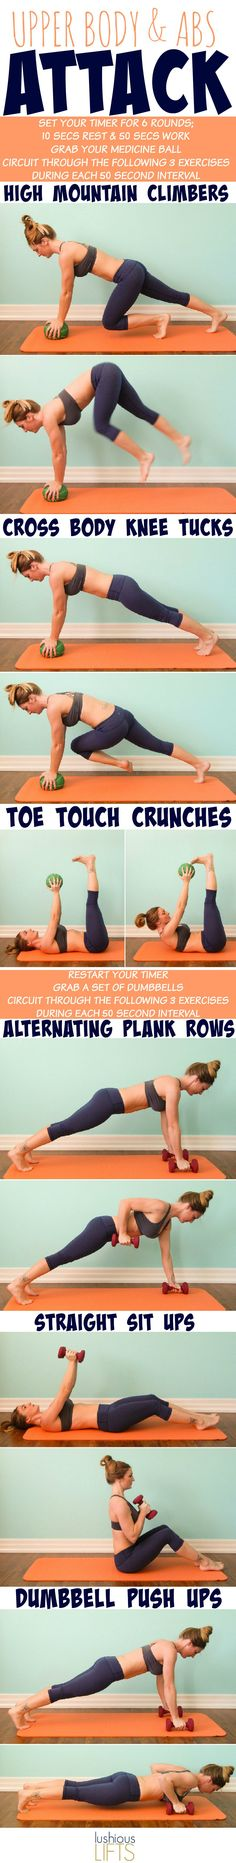 Not your every day ab workout